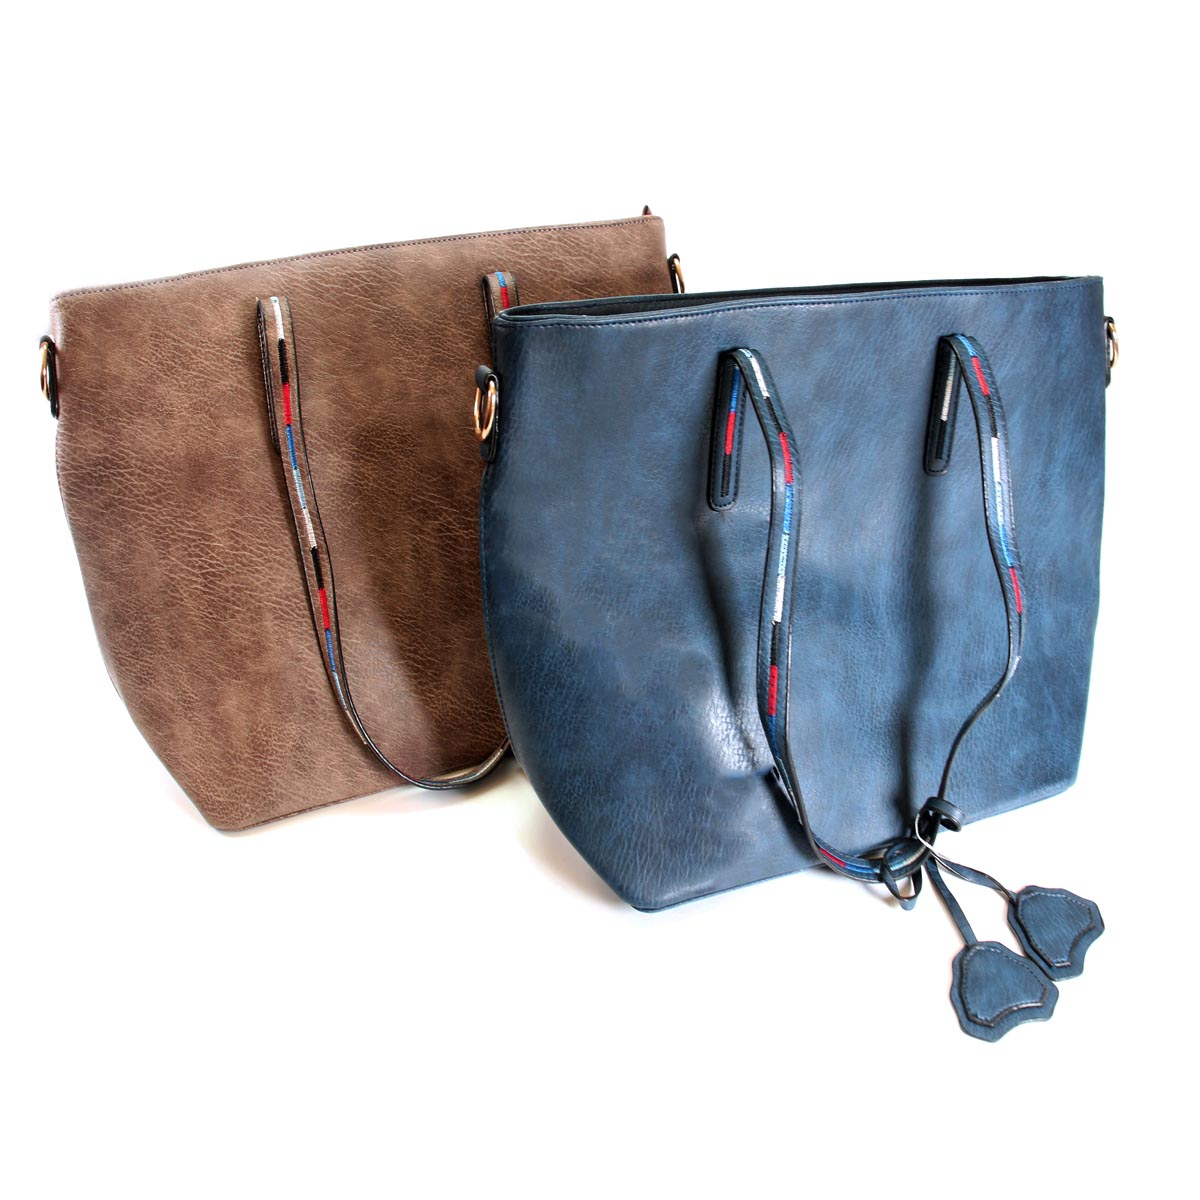 Tribal handbag- more colors